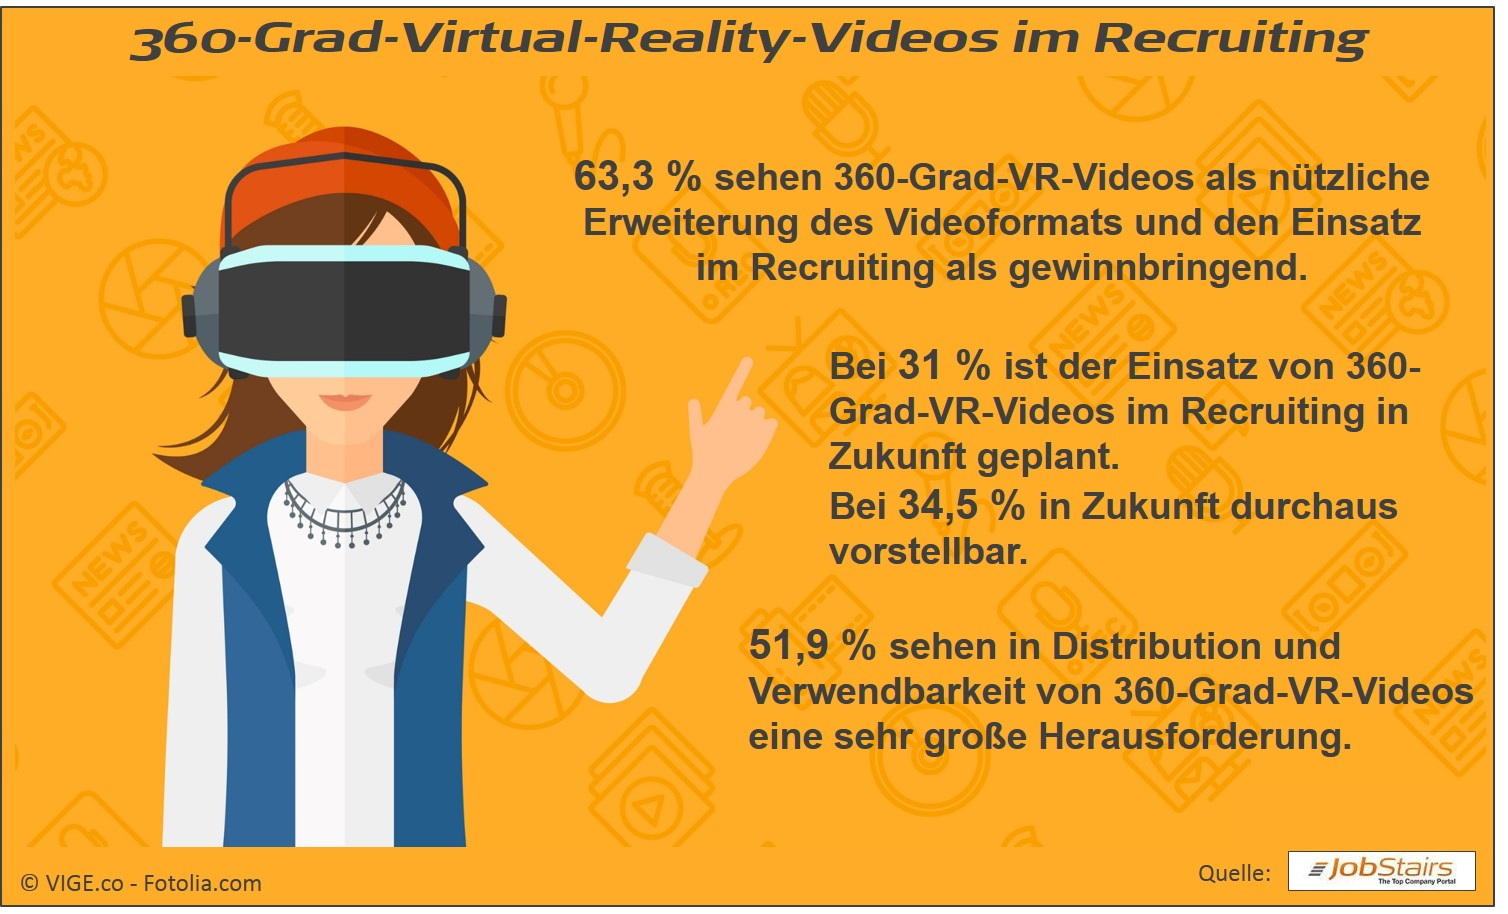 JobStairs Grafik1 360-Grad-VR-Videos im Recruiting - vige_co - fotolia